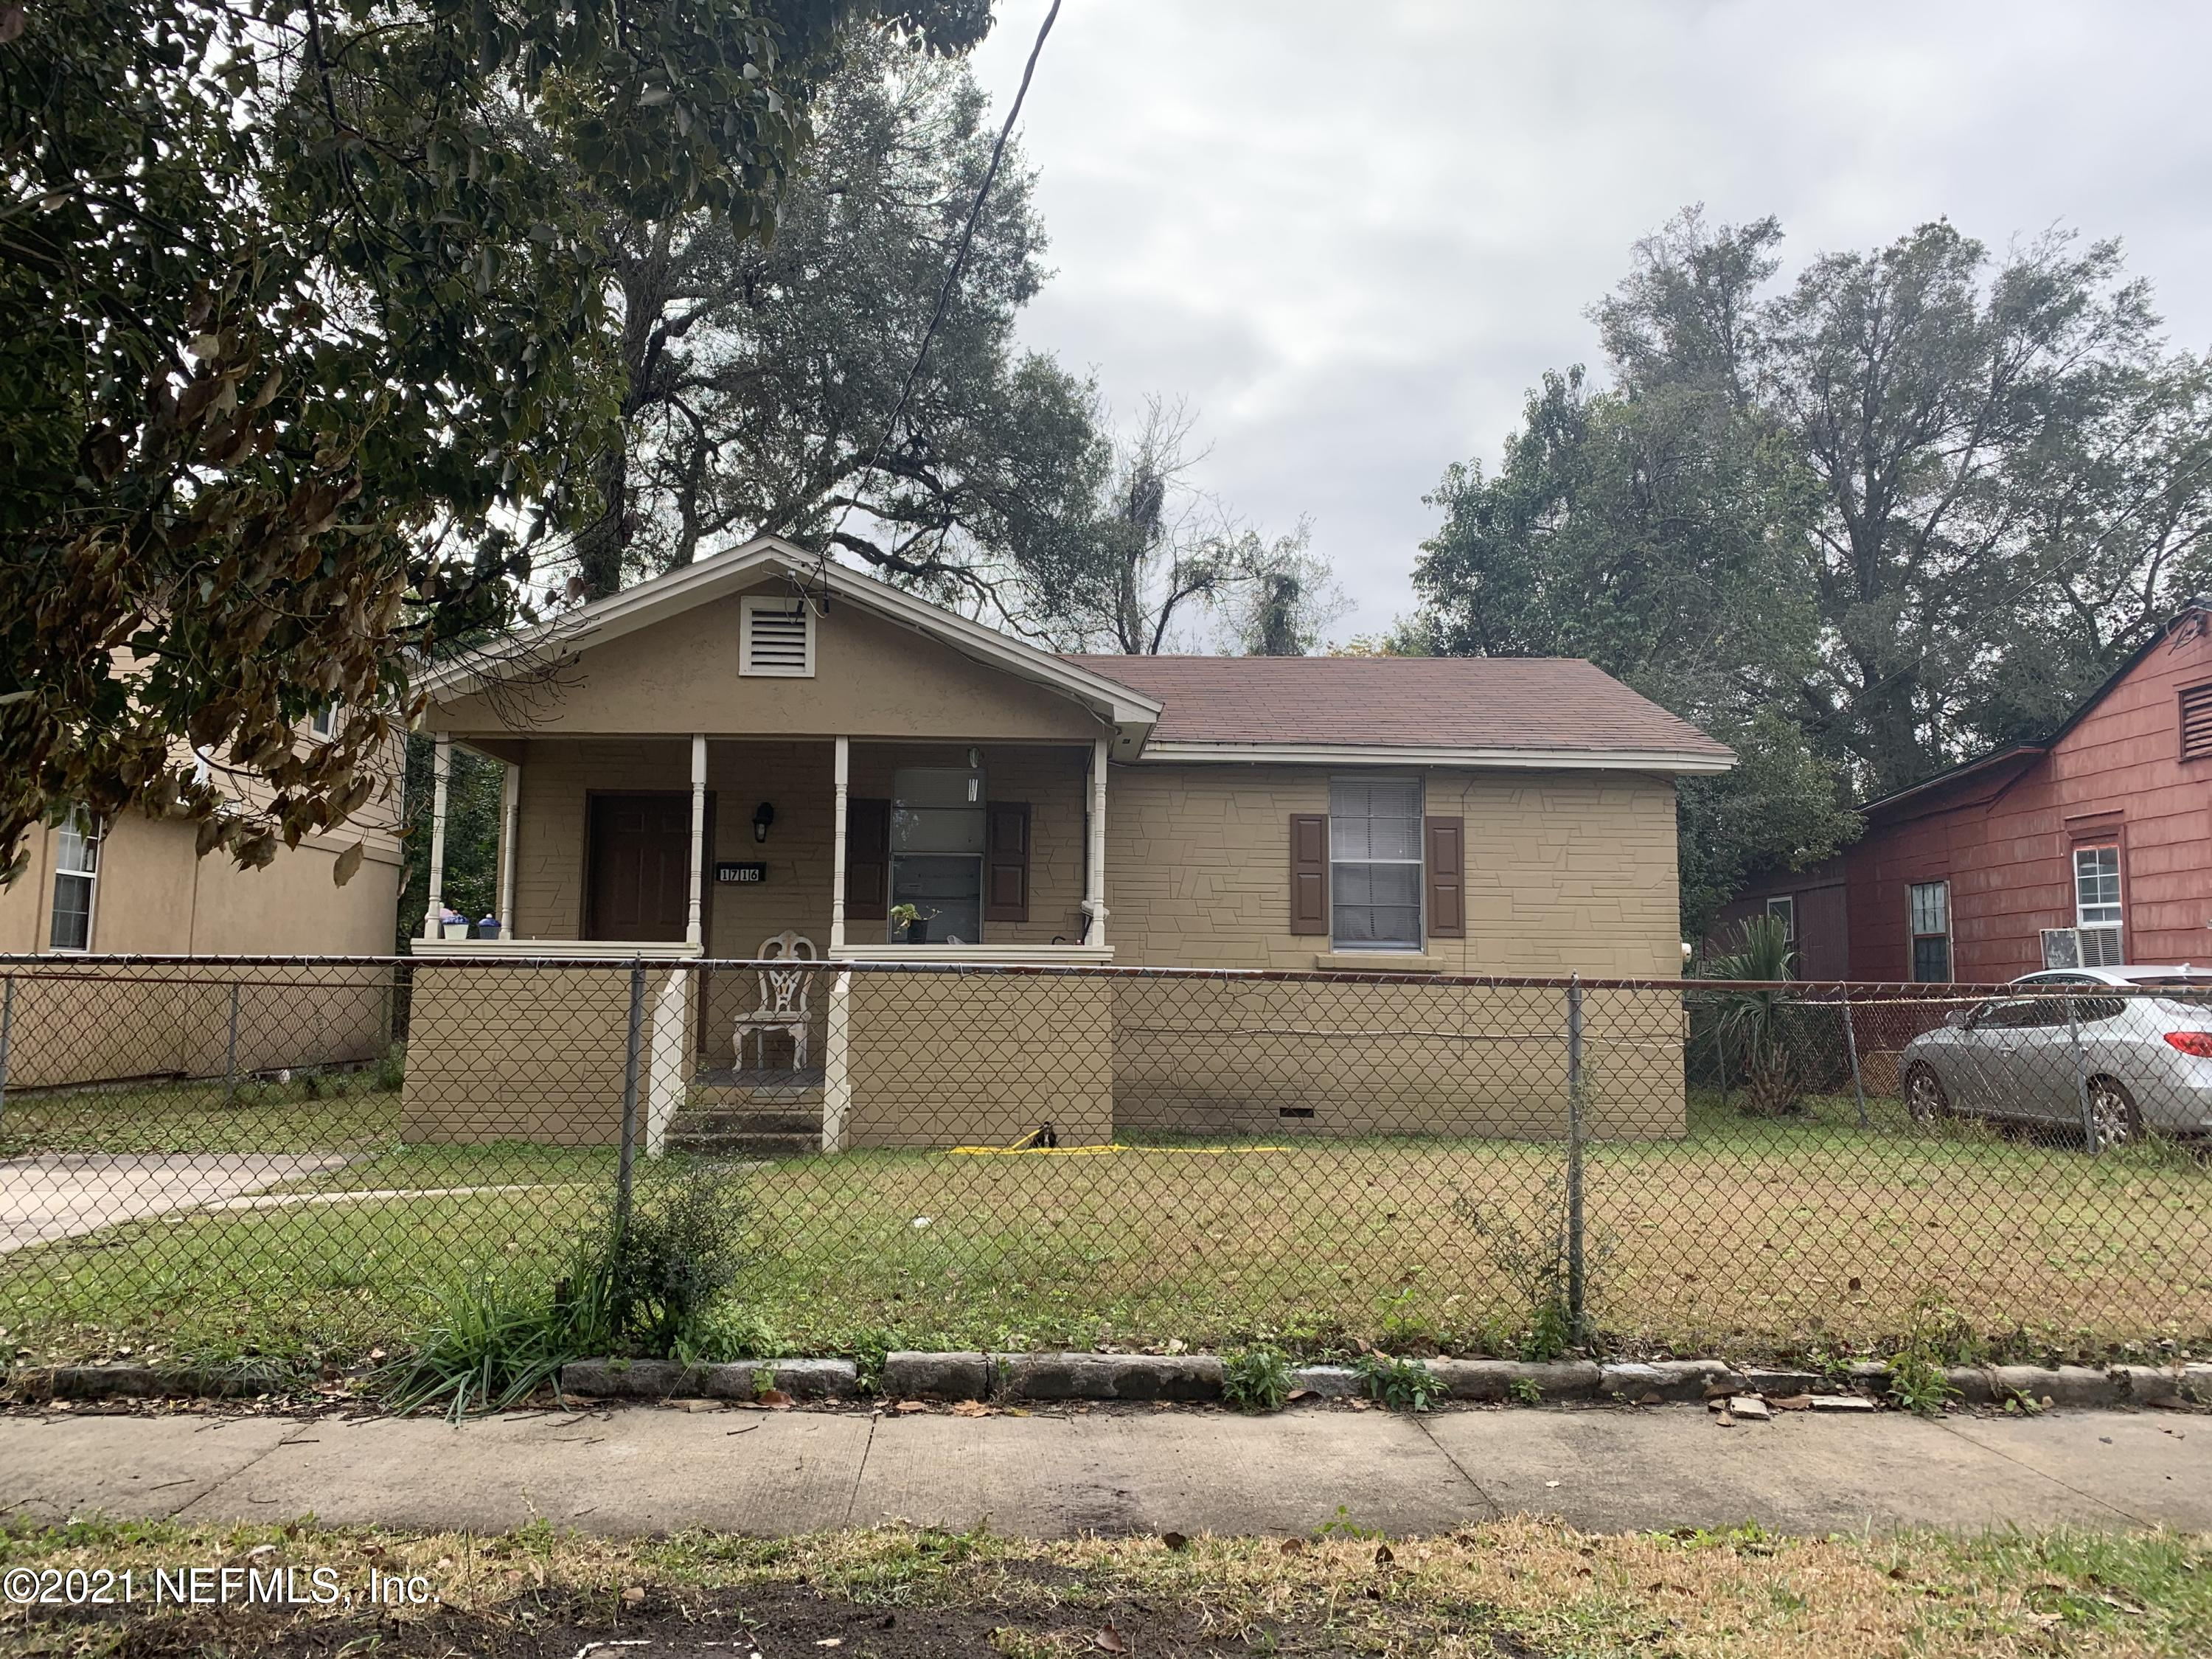 1716 24TH, JACKSONVILLE, FLORIDA 32206, 2 Bedrooms Bedrooms, ,1 BathroomBathrooms,Investment / MultiFamily,For sale,24TH,1089520